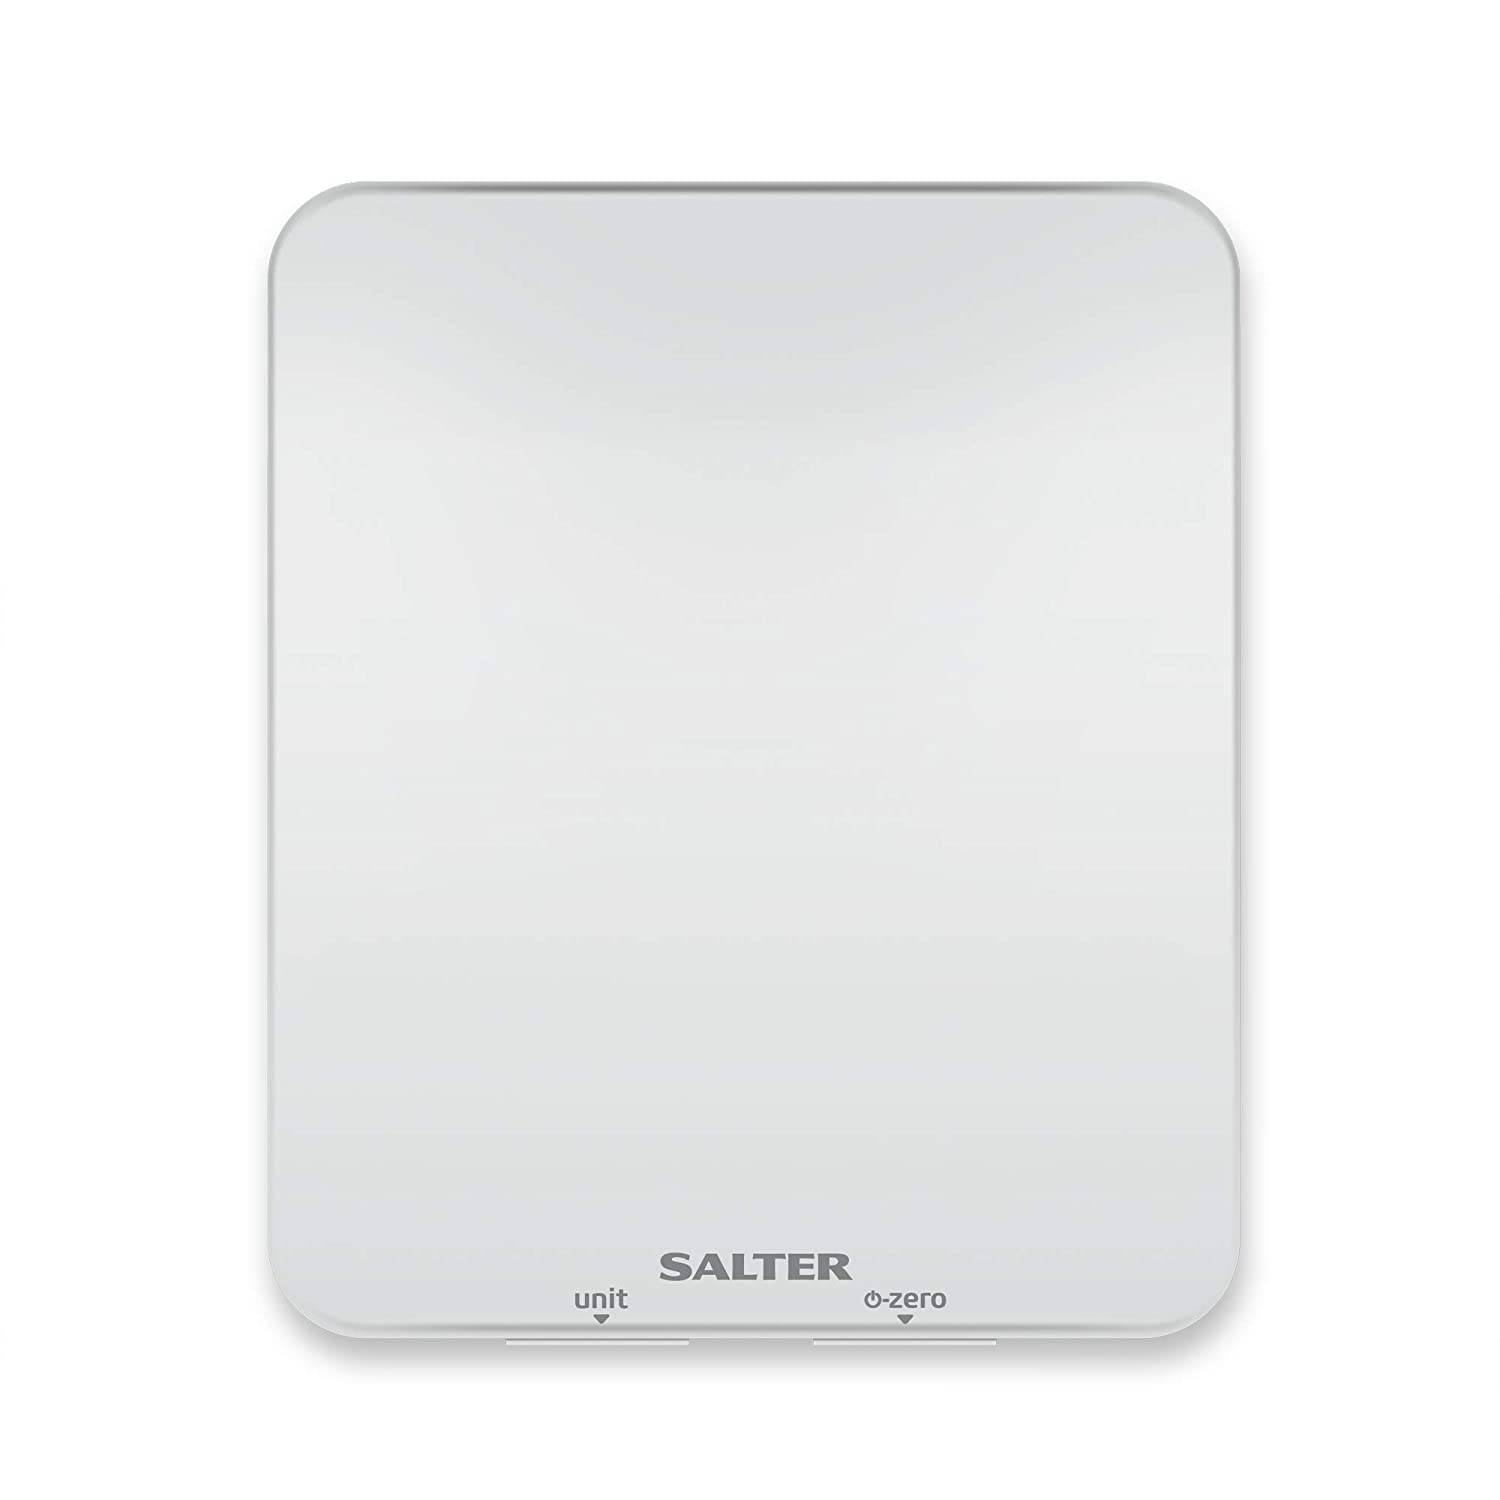 Salter Ghost Digital Kitchen Scale - Electric Food Weighing Scales for Cooking and Baking, Hidden Until Lit Easy to Read LCD Display, Metric / Imperial Weight Measurements, 15 Year Guarantee - White